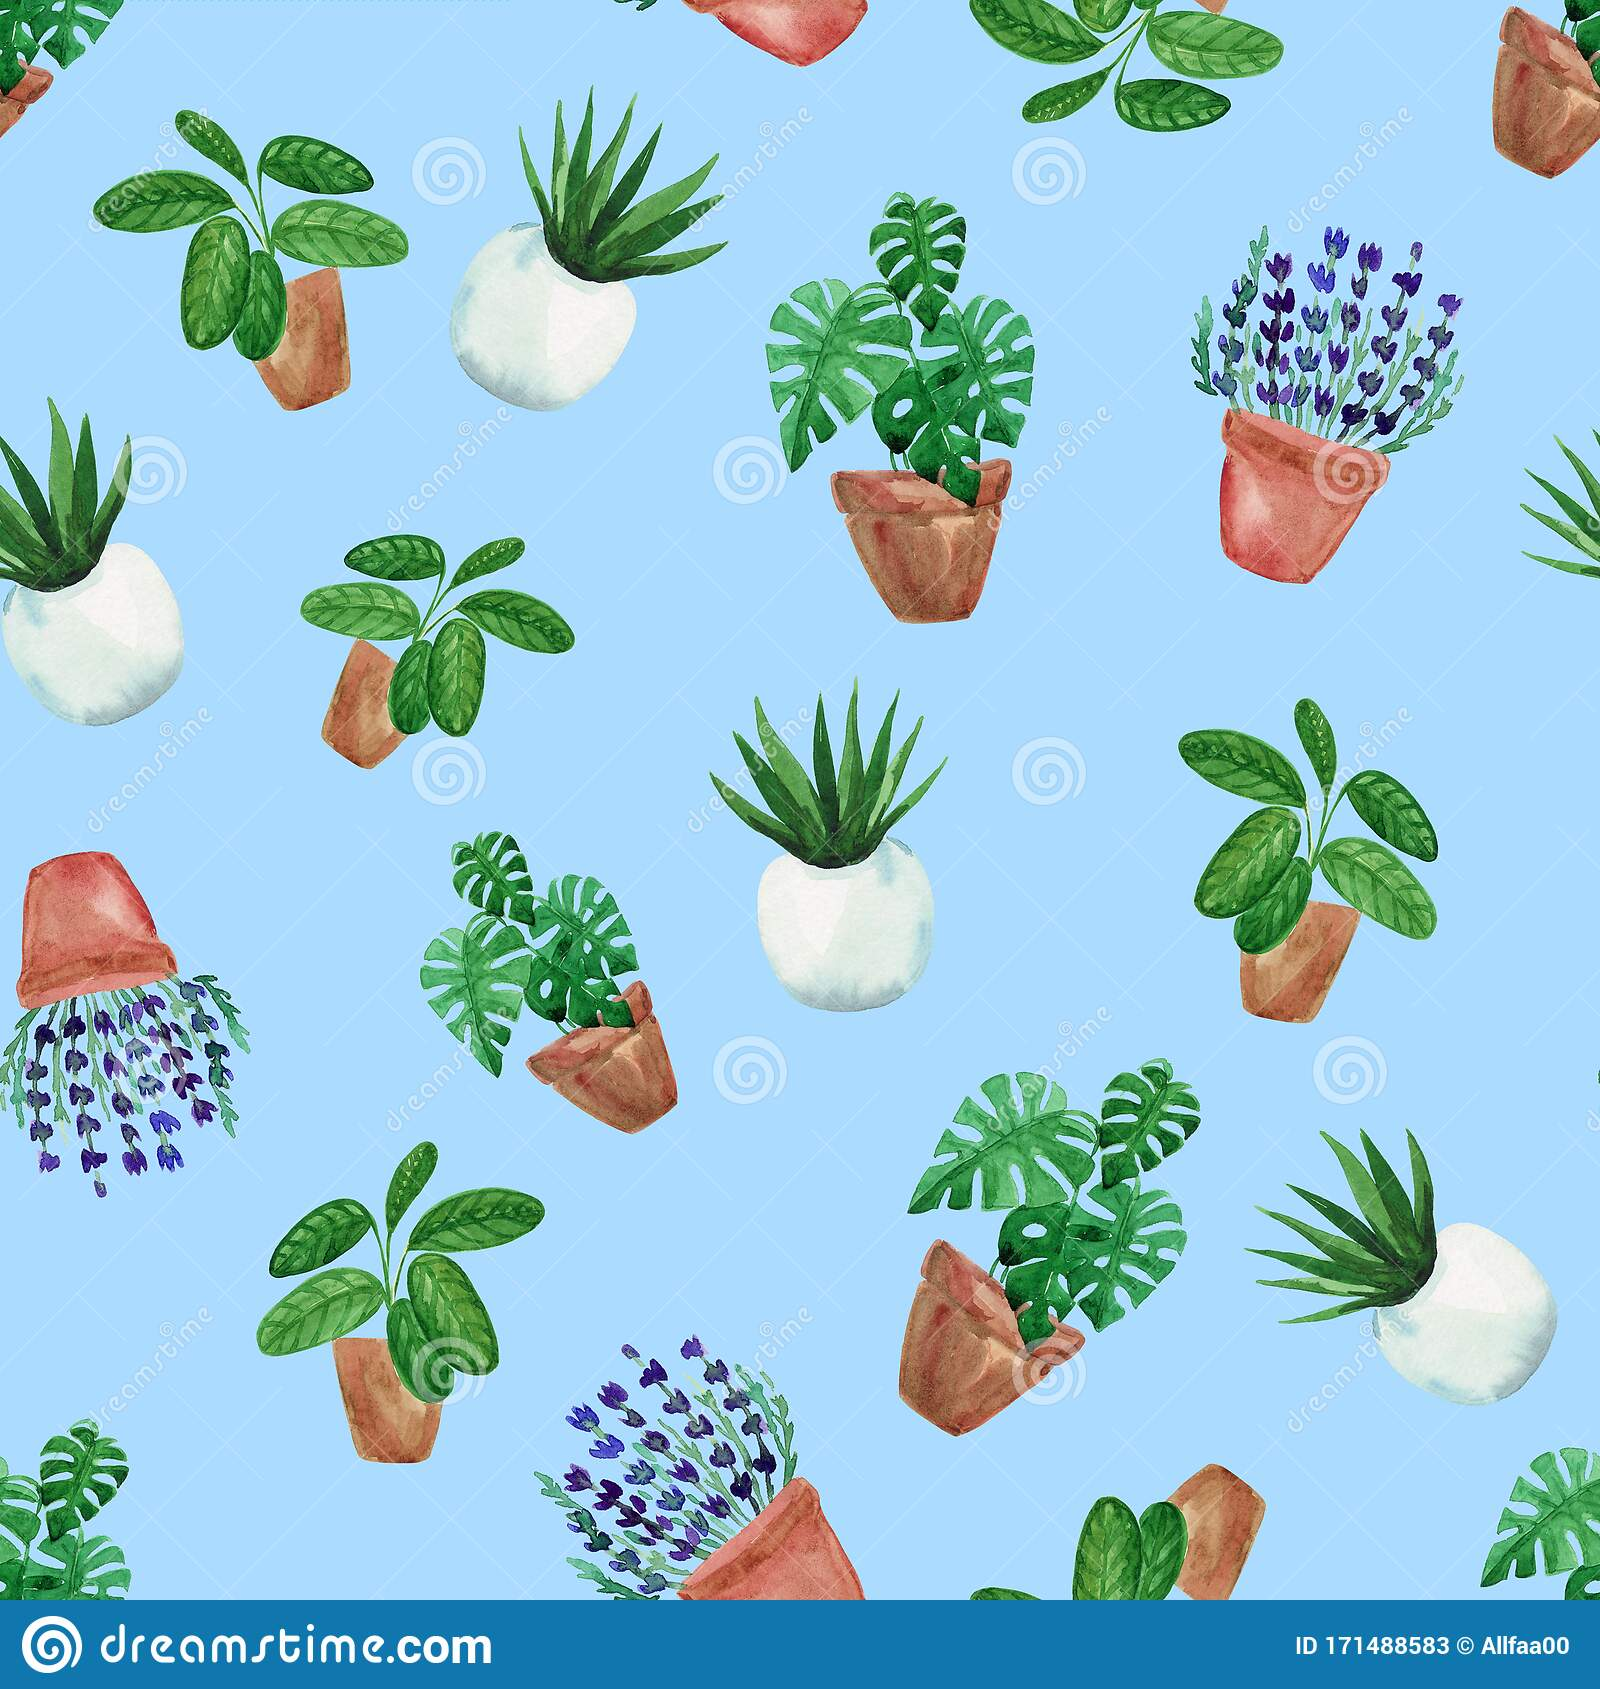 Watercolor Hand Painted House Green Plants In Flower Pots Seamless Pattern Of Floral Elements On Blue Background Stock Illustration Illustration Of Agriculture House 171488583